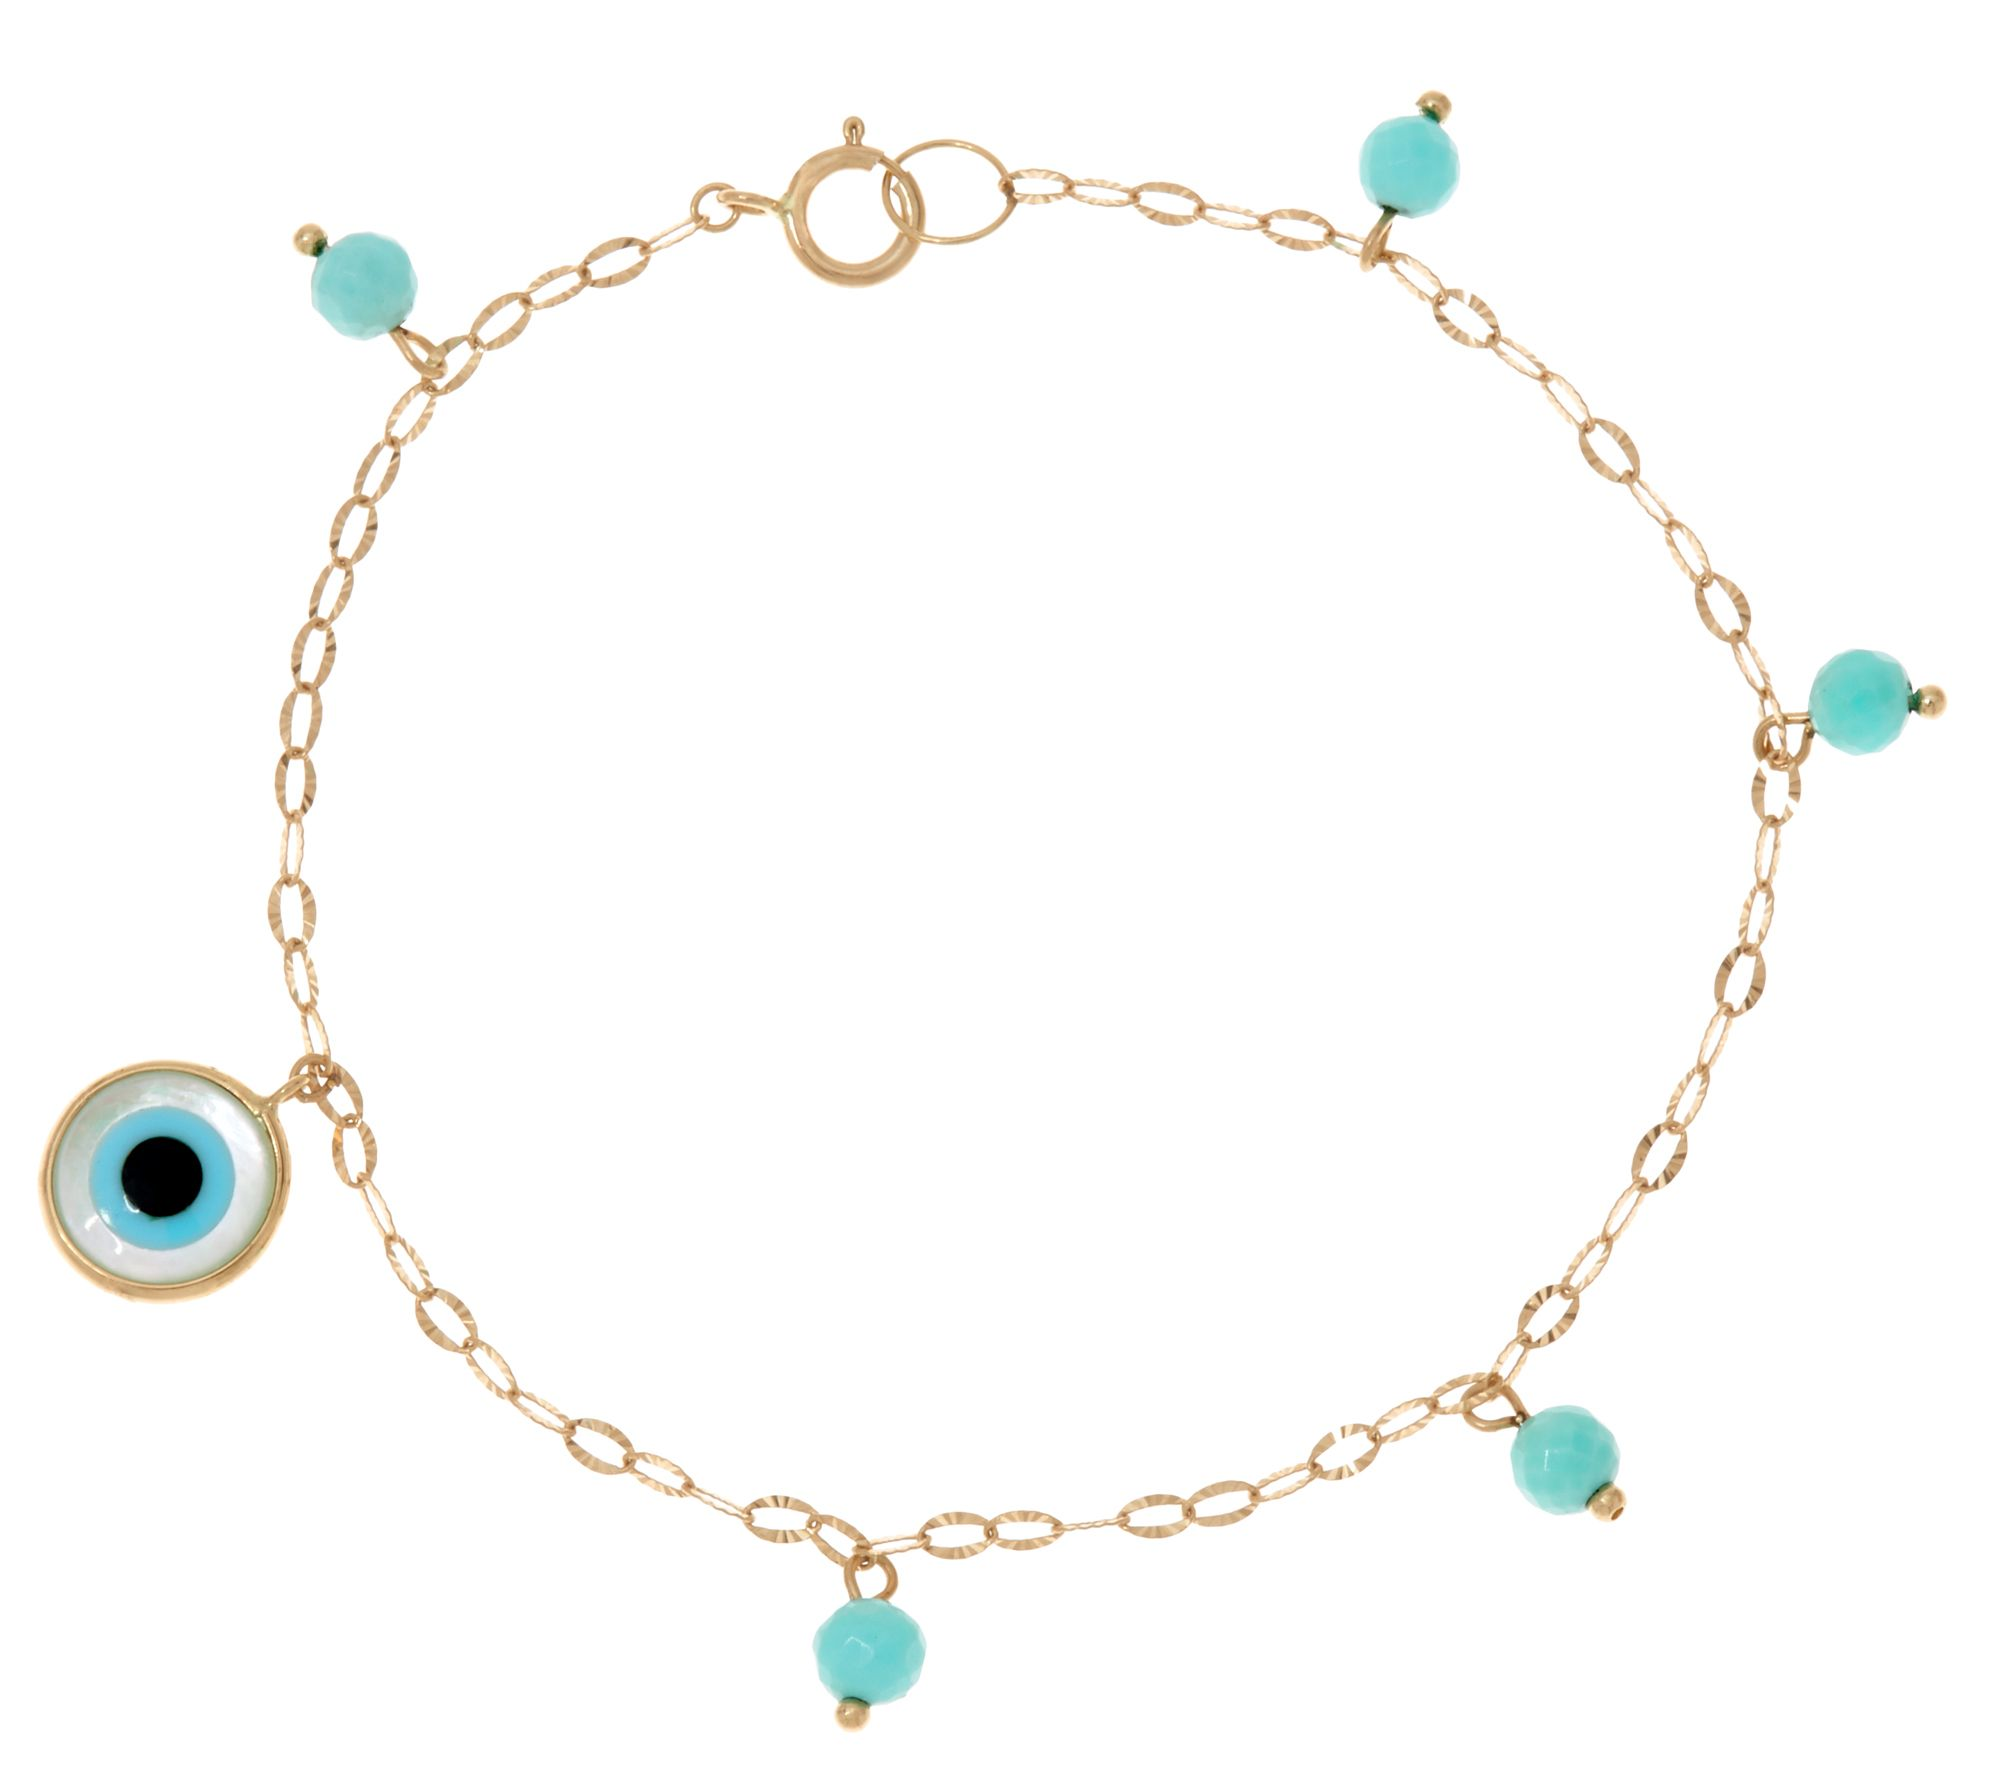 anklets turquoise best reviews accessorize anklet india prices online women bracelet bracelets for buy